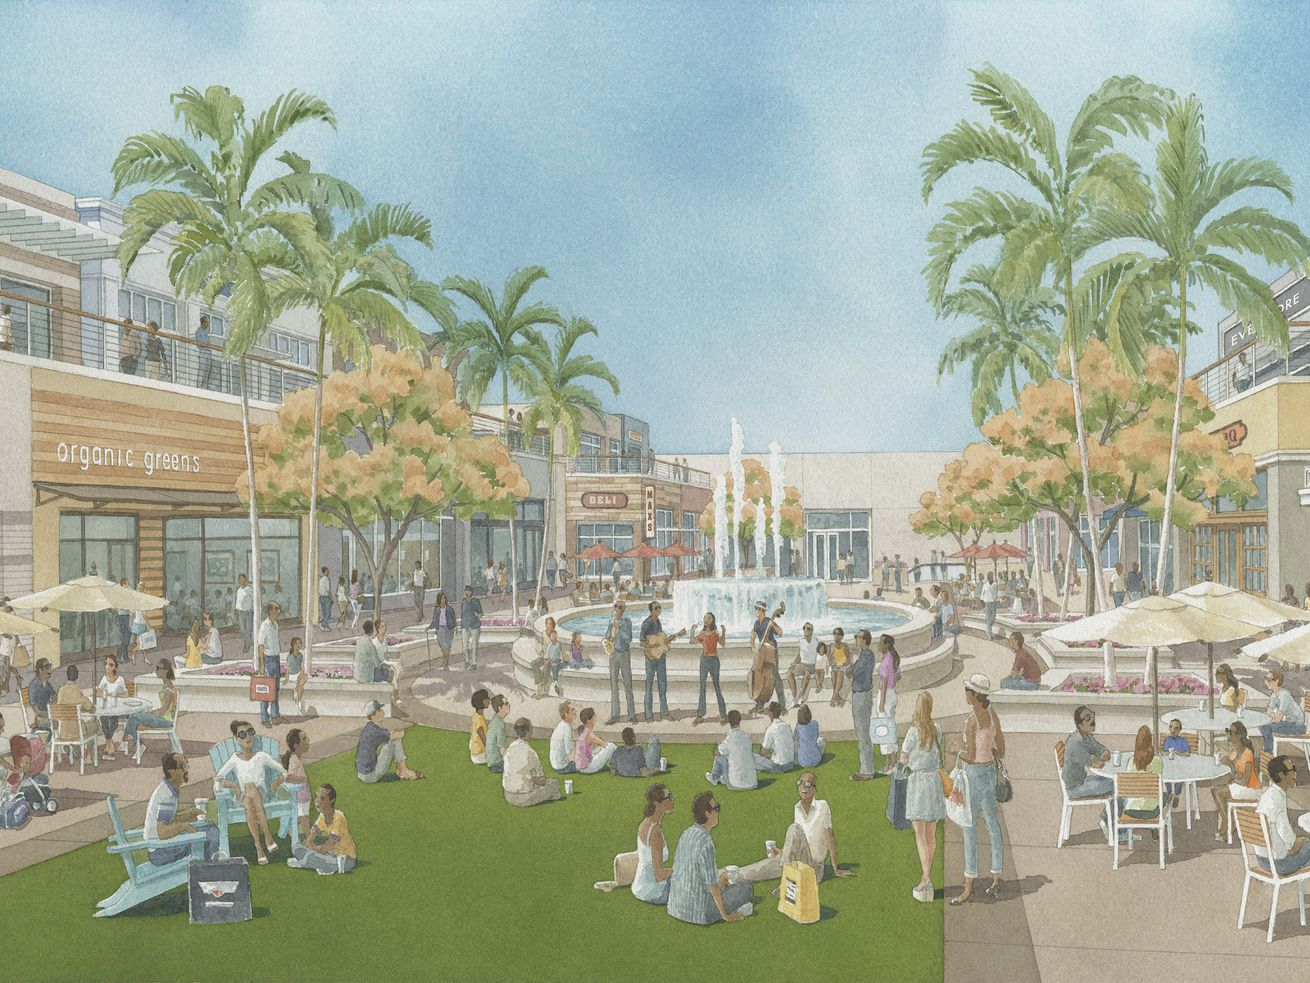 2017 renderings of the redeveloped mall.